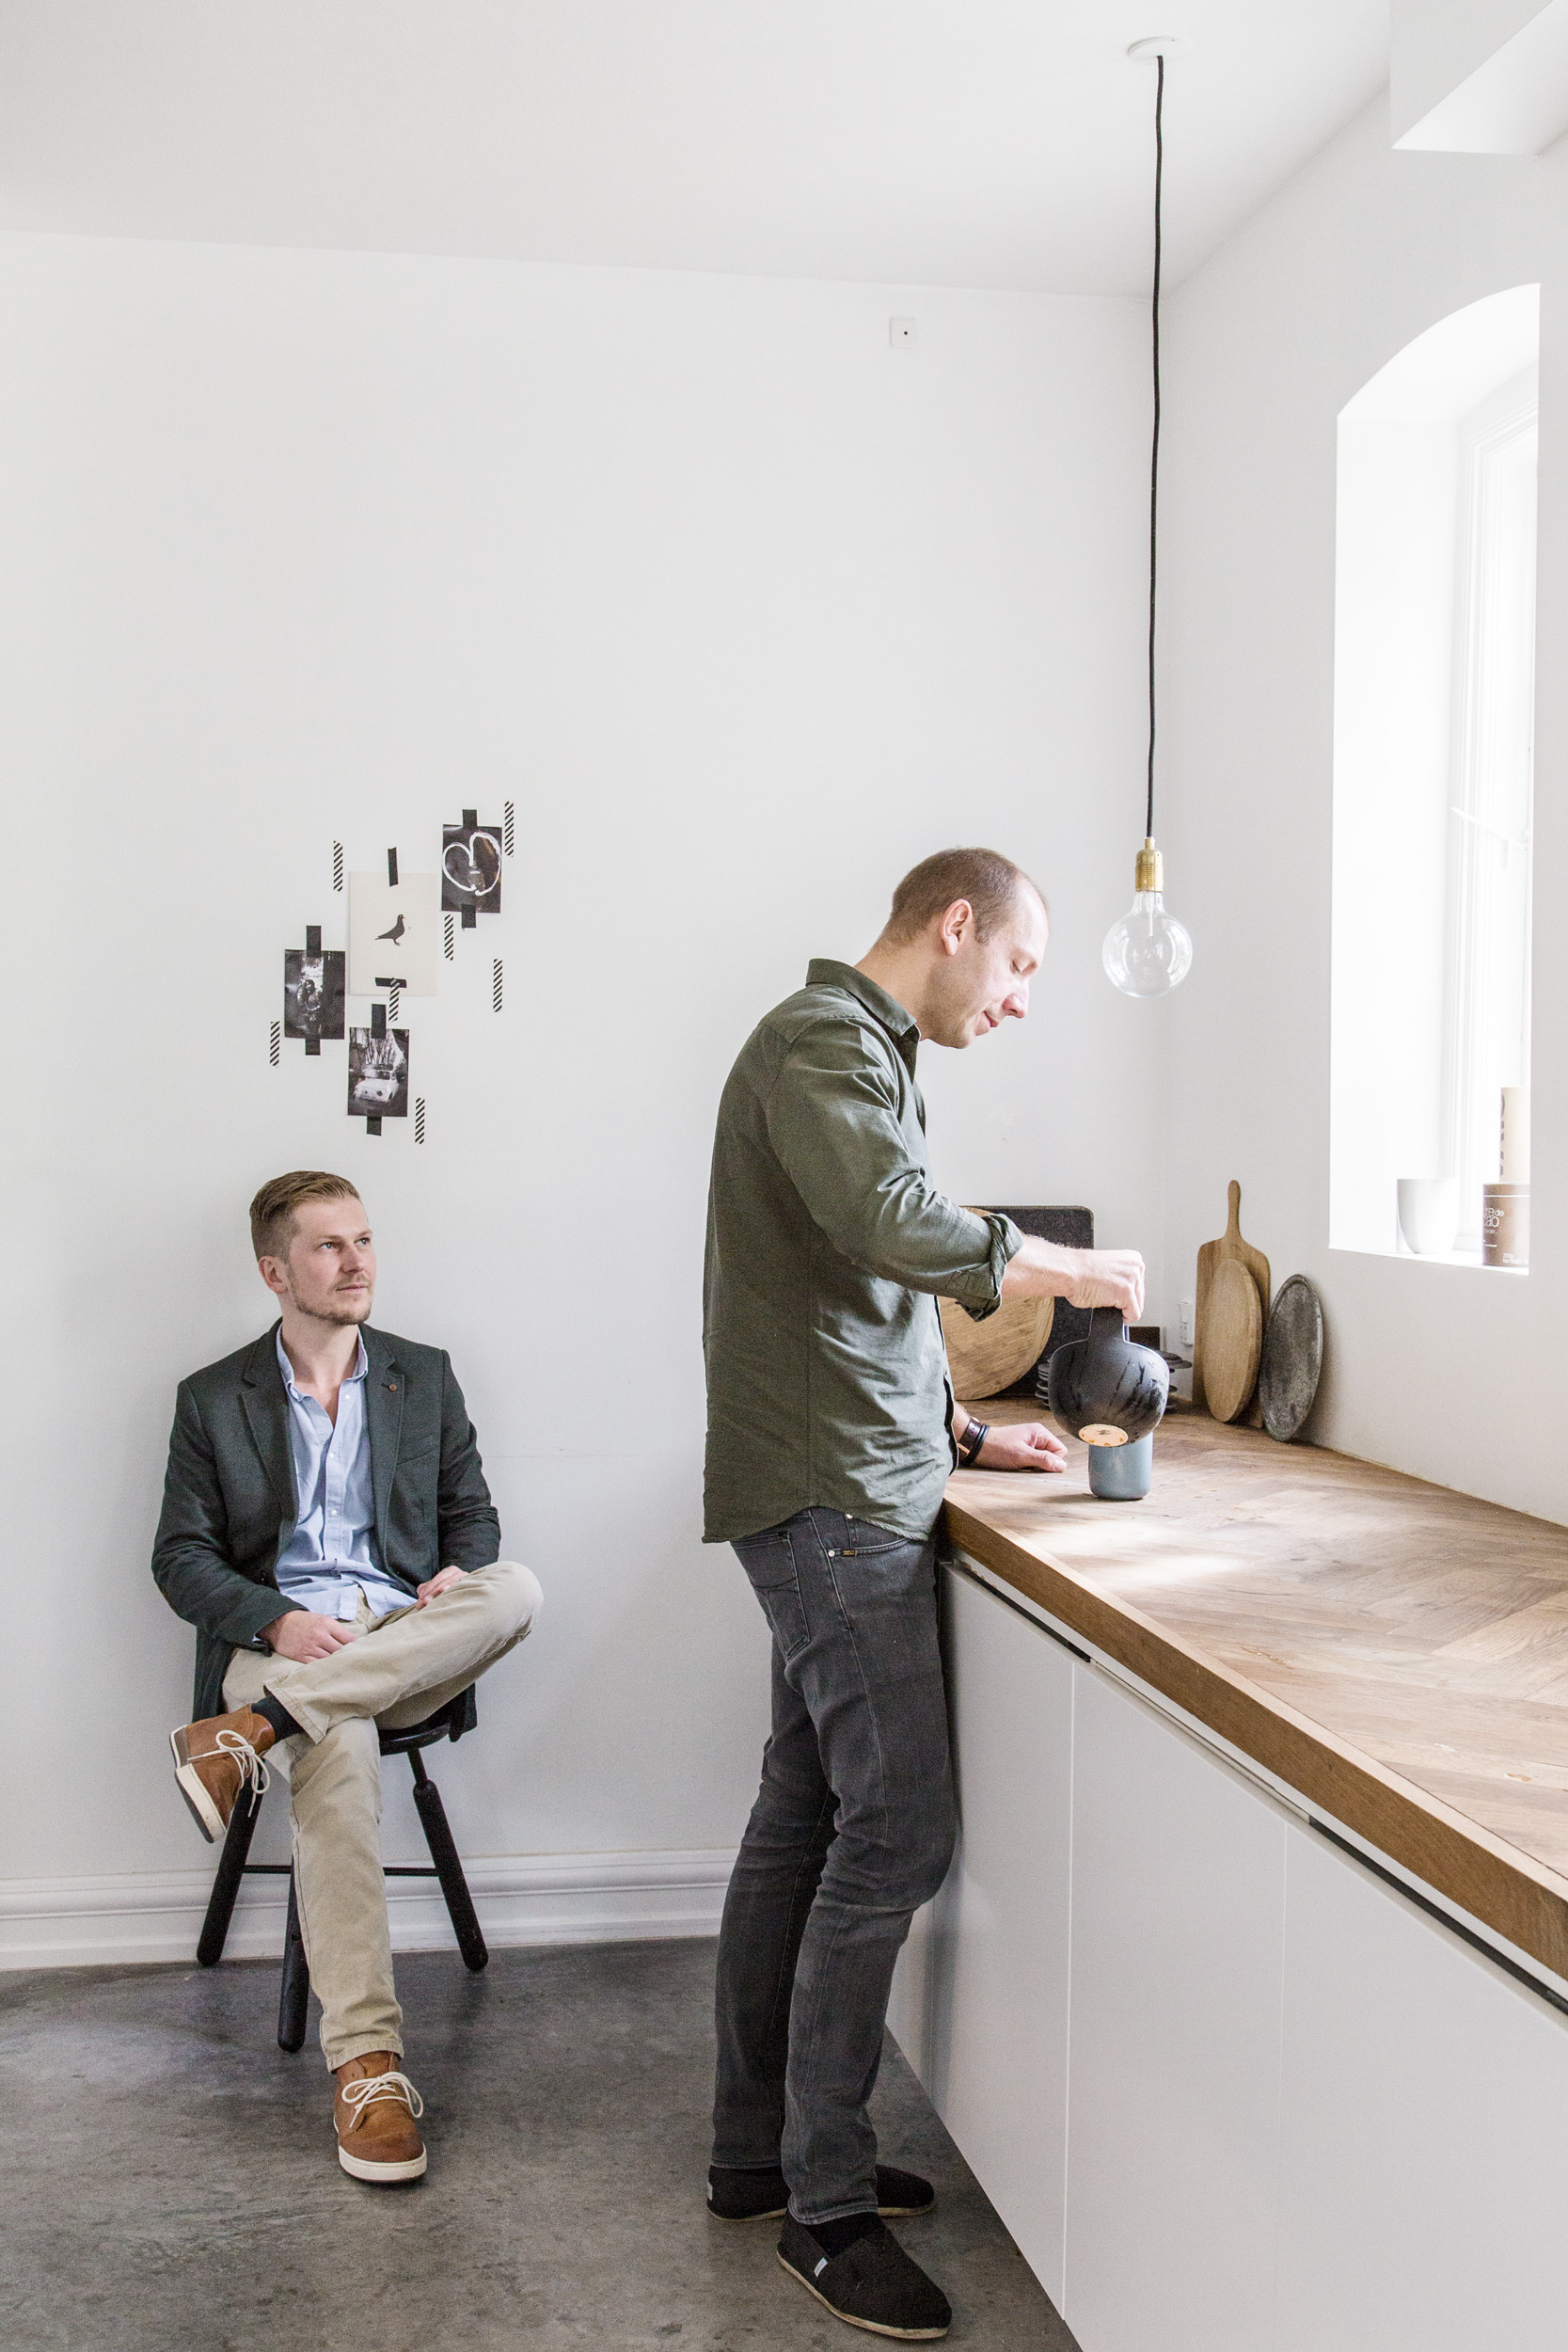 Norm Architects - Photo reportage and interview with Norm Architects for Not Today Magazine. Shot in the home of Jonas Bjerre.